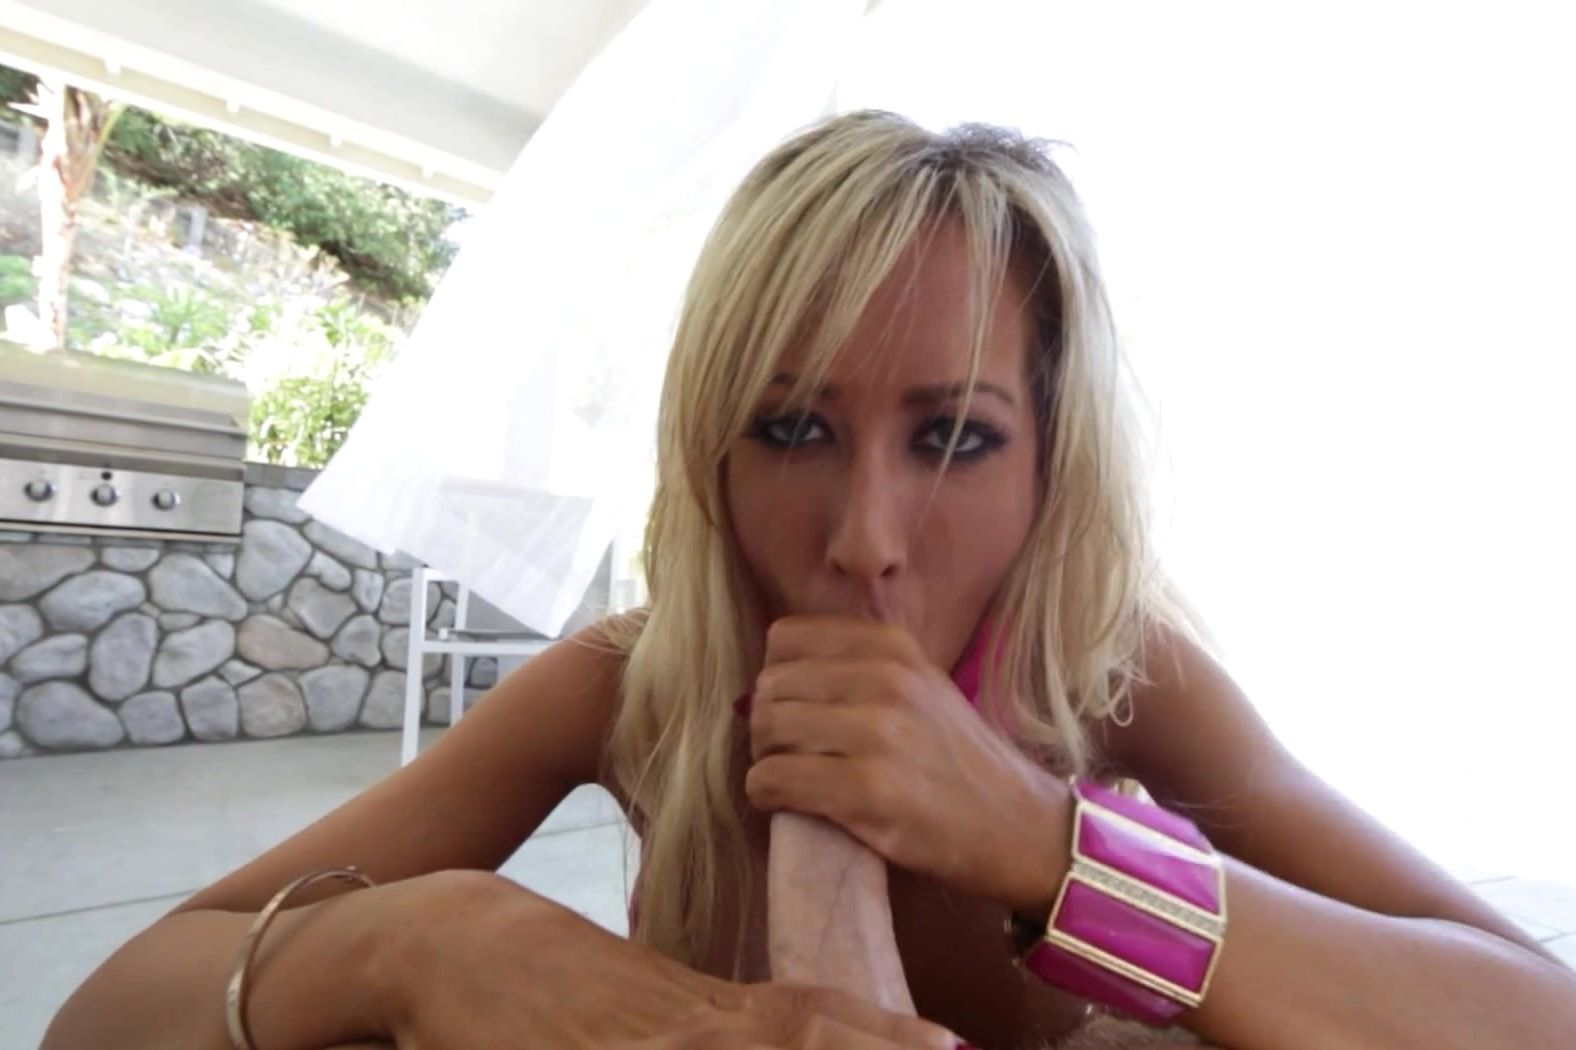 Like janine lind blowjob someone alphabetic